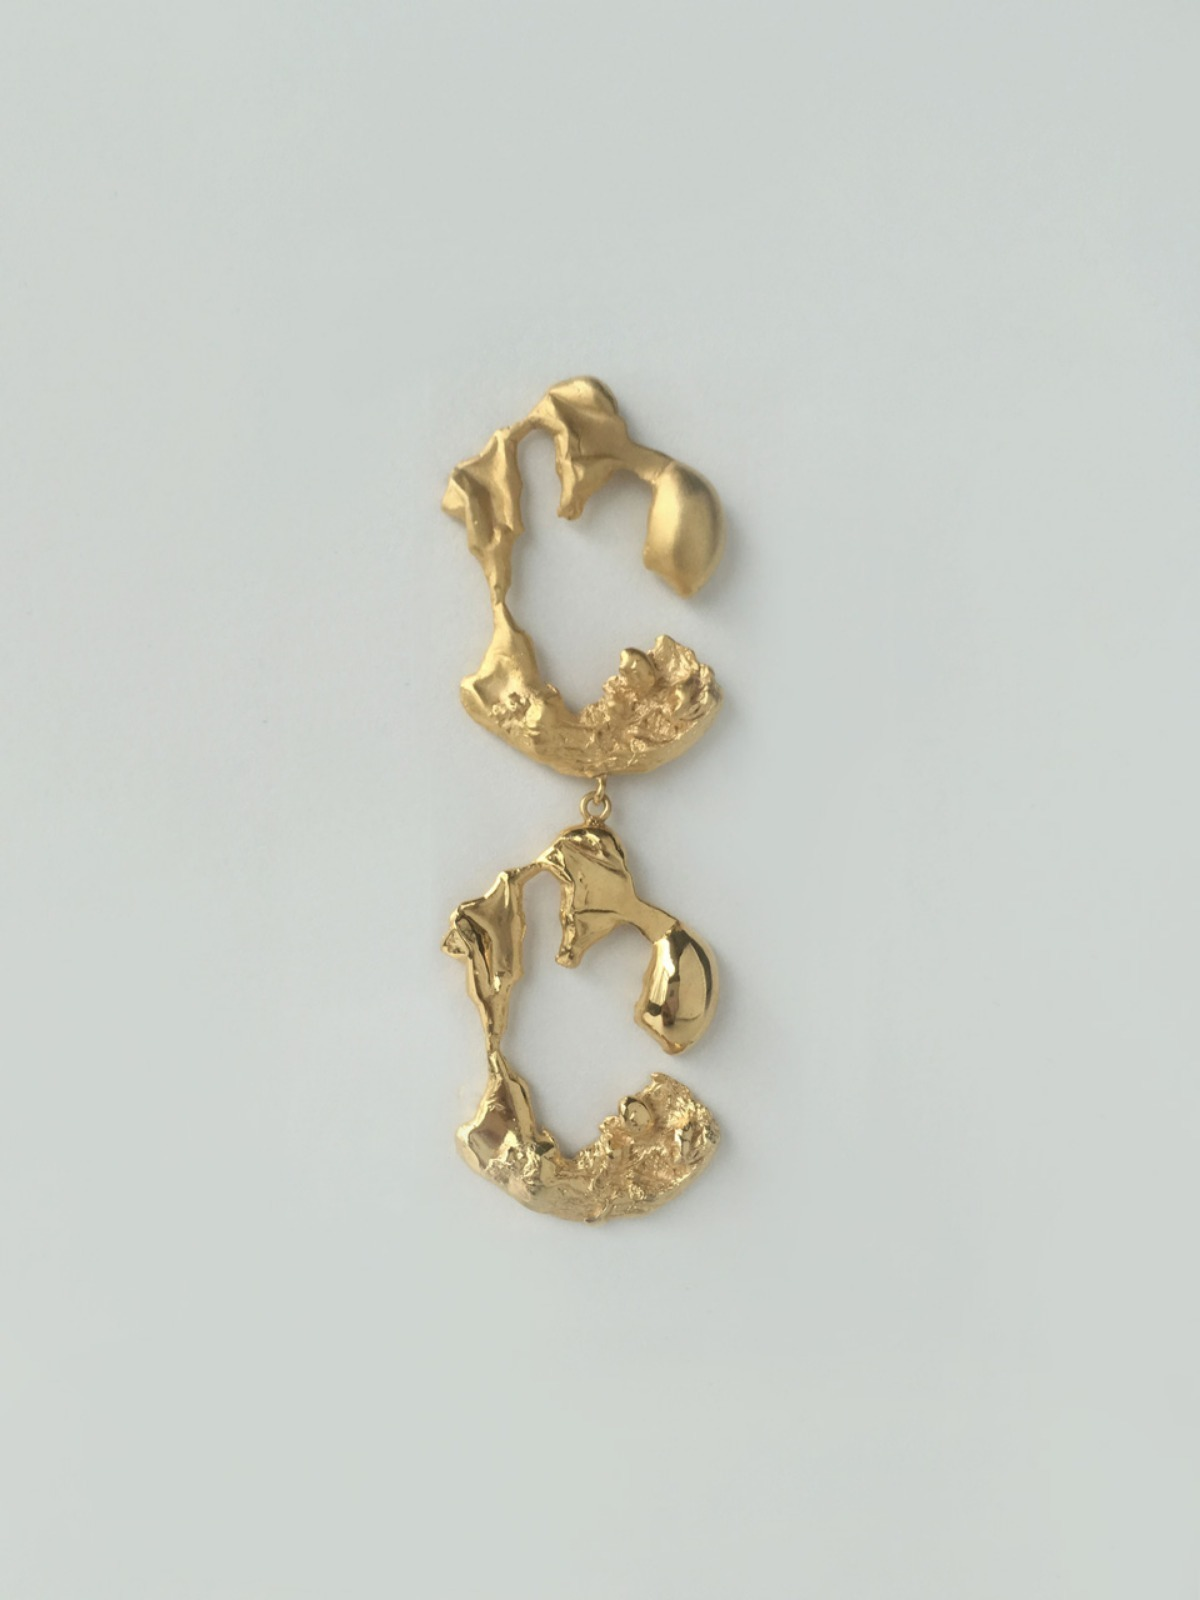 Melting C earring (duet)